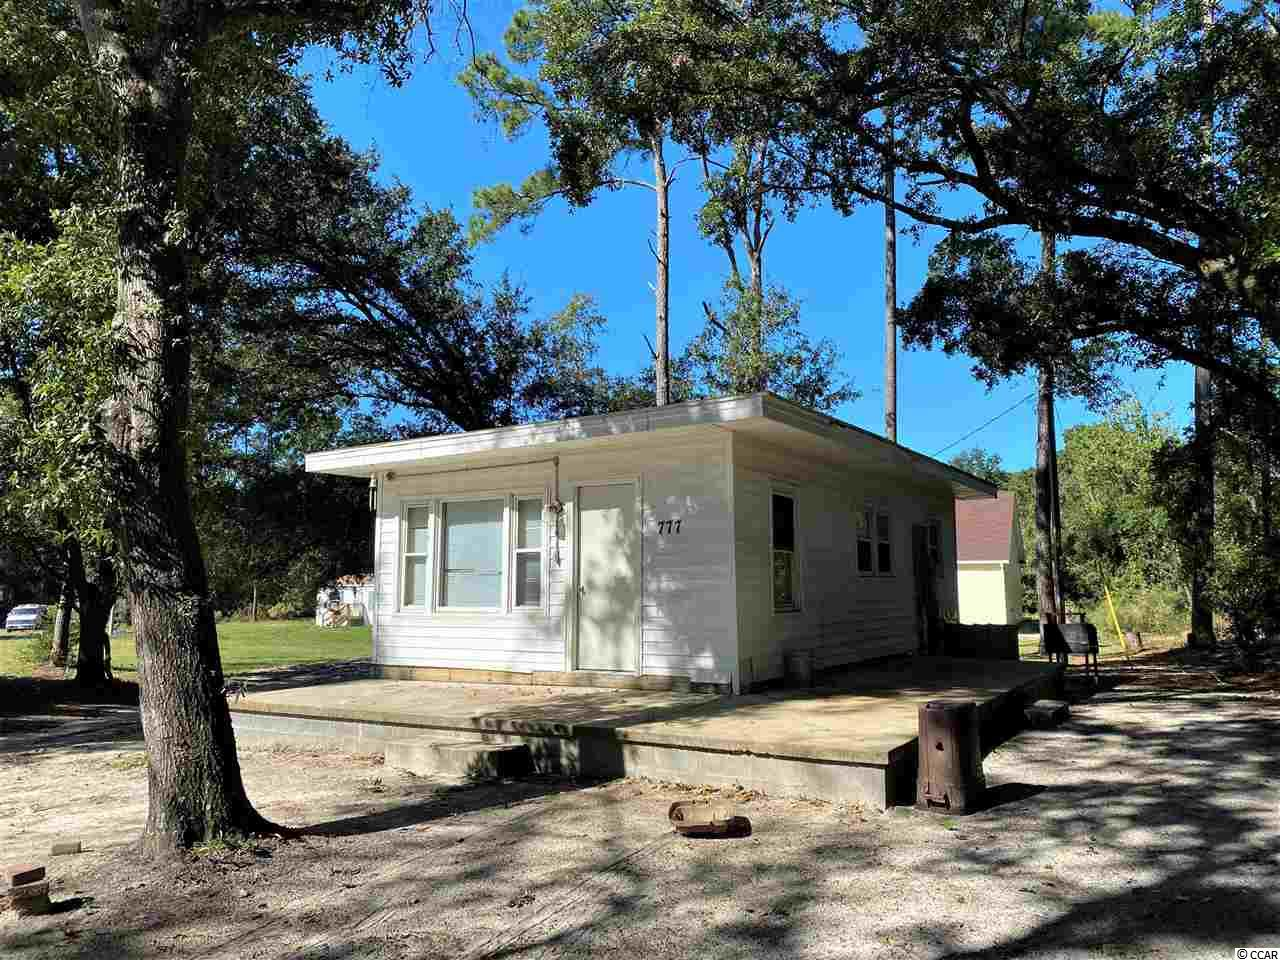 Great INVESTMENT or GET-A-WAY property that sits on .41 acre of land surrounded by beautiful tall oak trees just minutes from Cherry Grove Beach. This unique one bedroom, one bath house has great potential.  A MUST SEE!